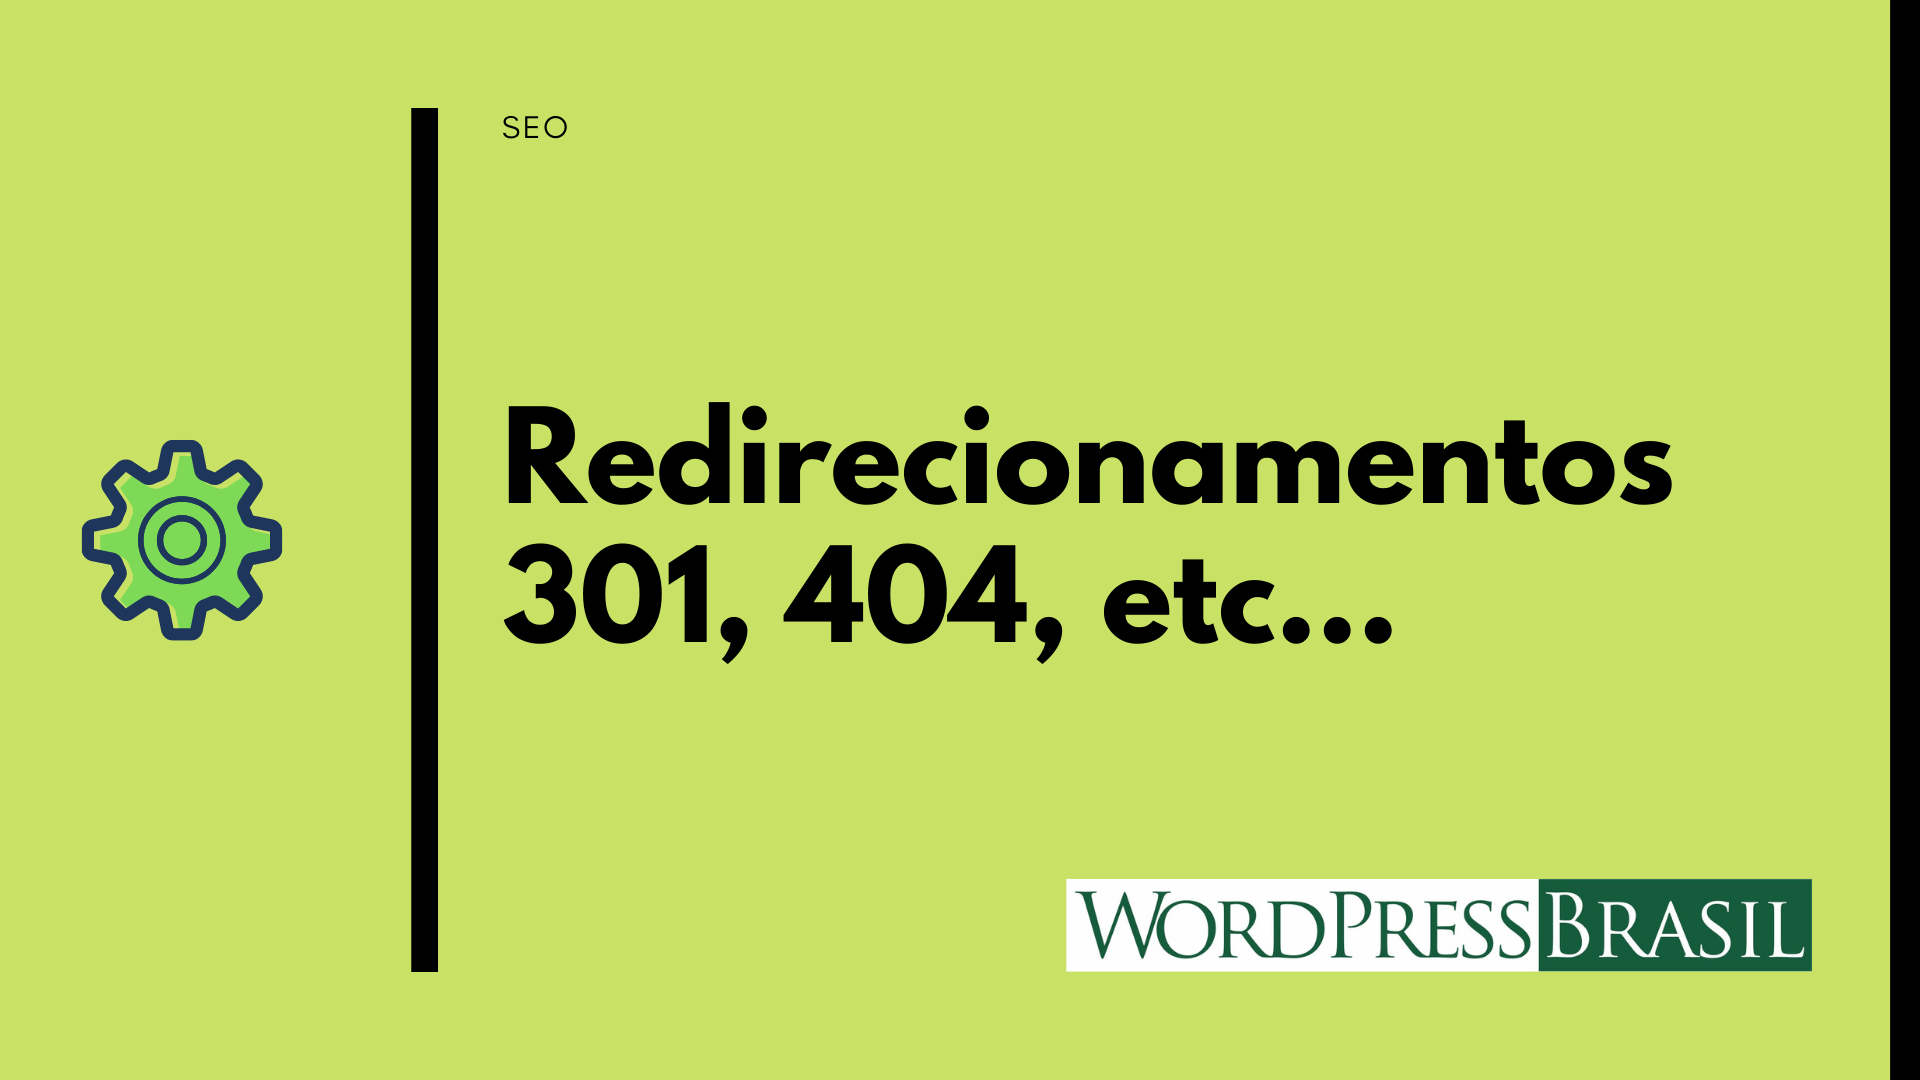 Redirecionamentos no WordPress - Como lidar